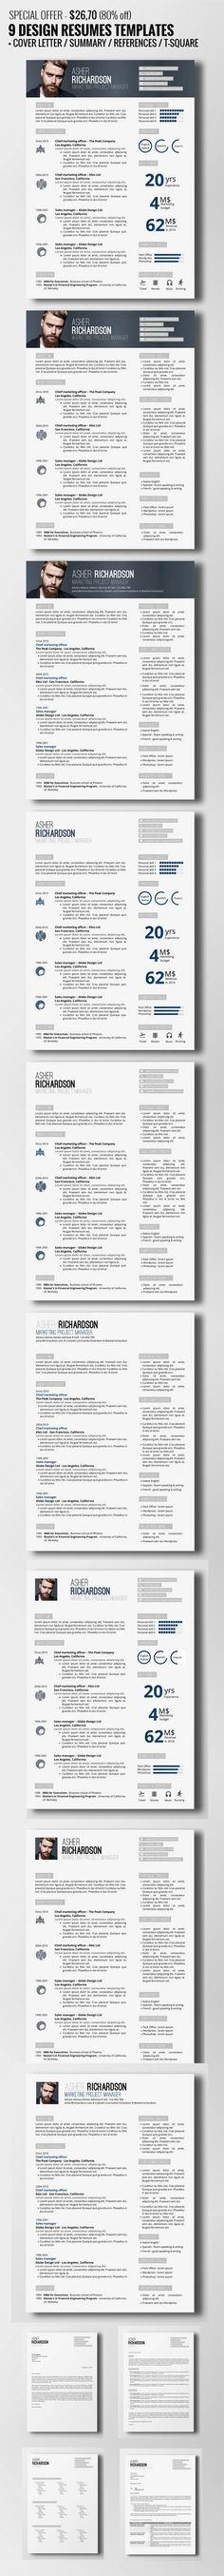 435 best Resume images on Pinterest Resume design, Design resume - graphic design skills resume